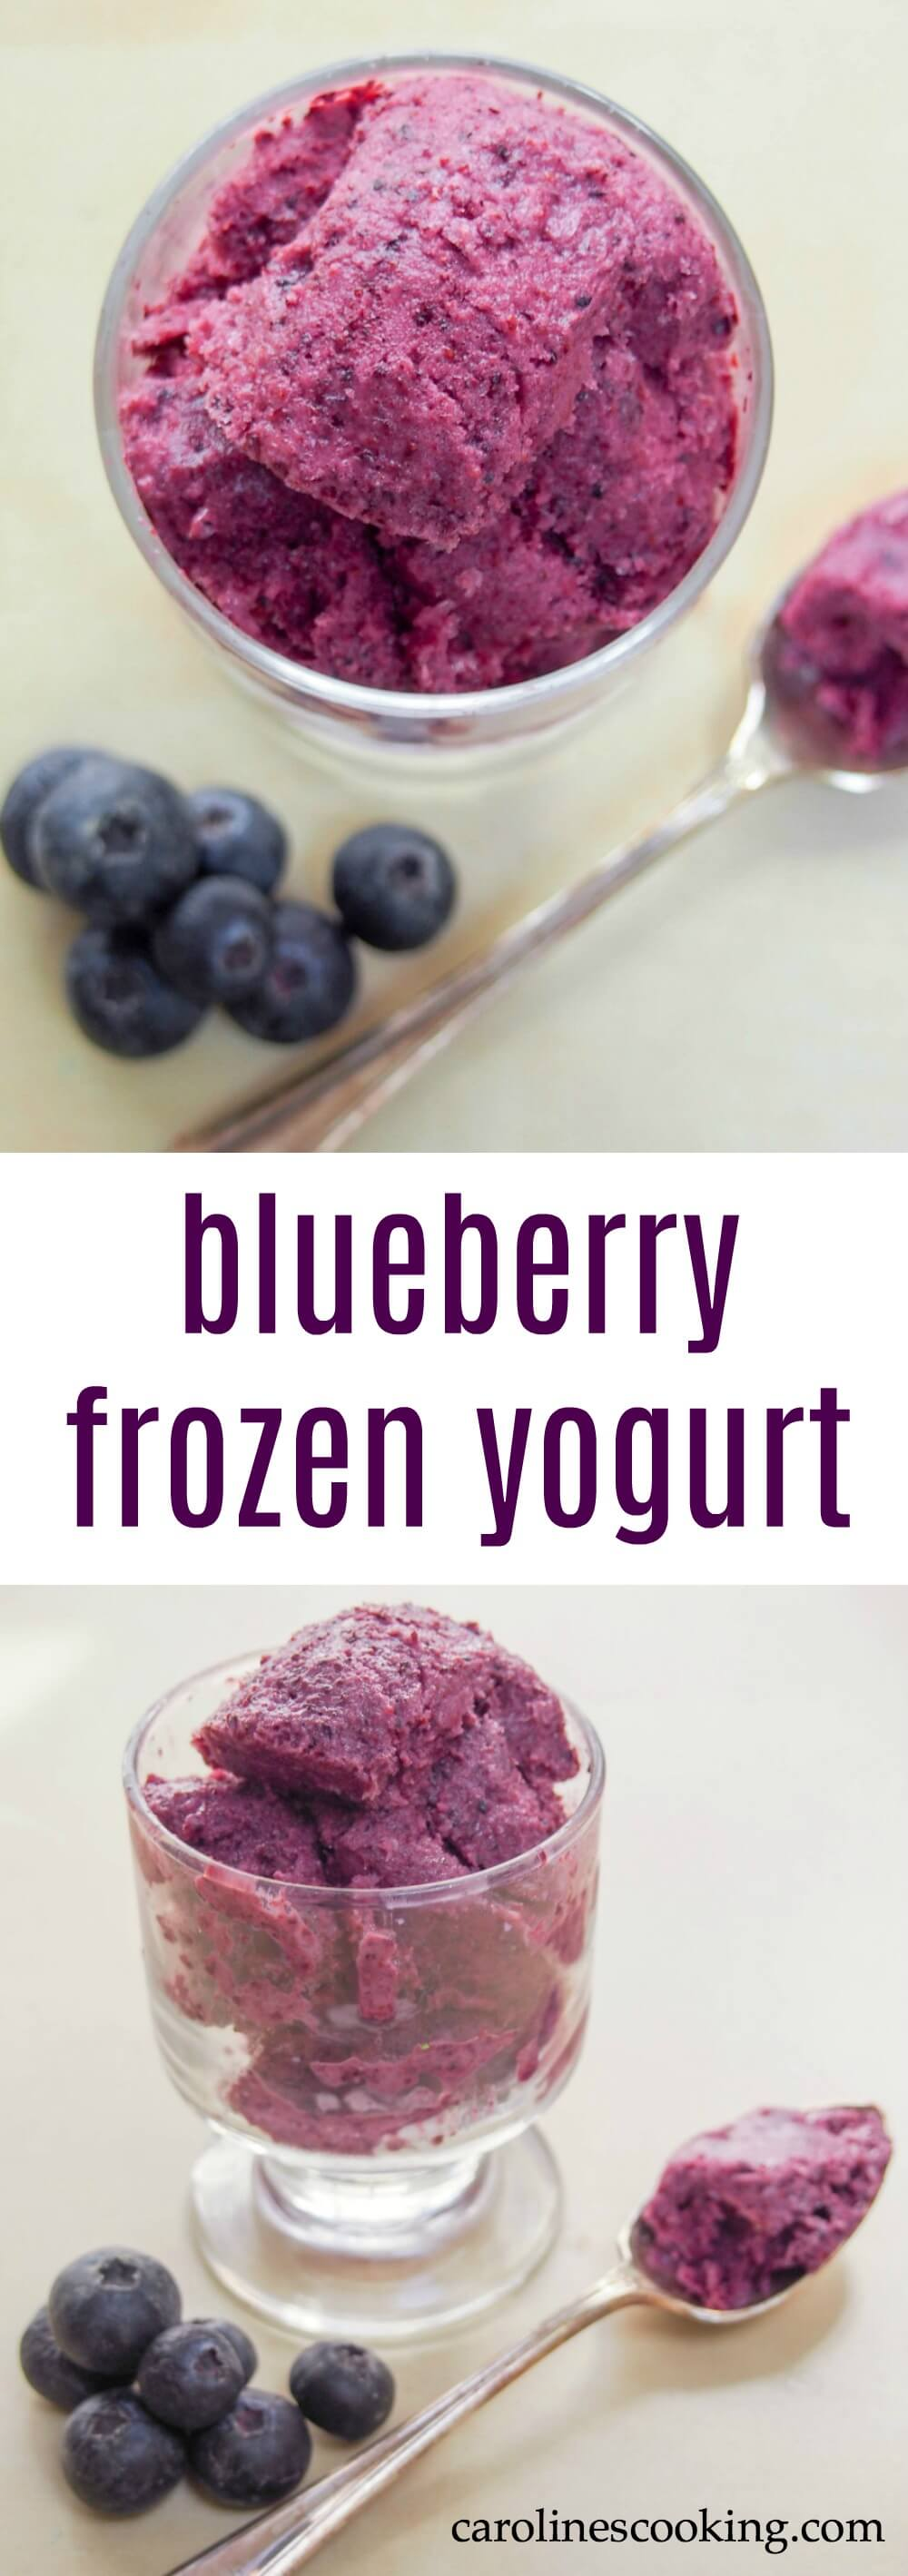 This blueberry frozen yogurt is easy to make and surprisingly good for you. It's not overly sweet but thoroughly delicious and perfect for a summer's day.